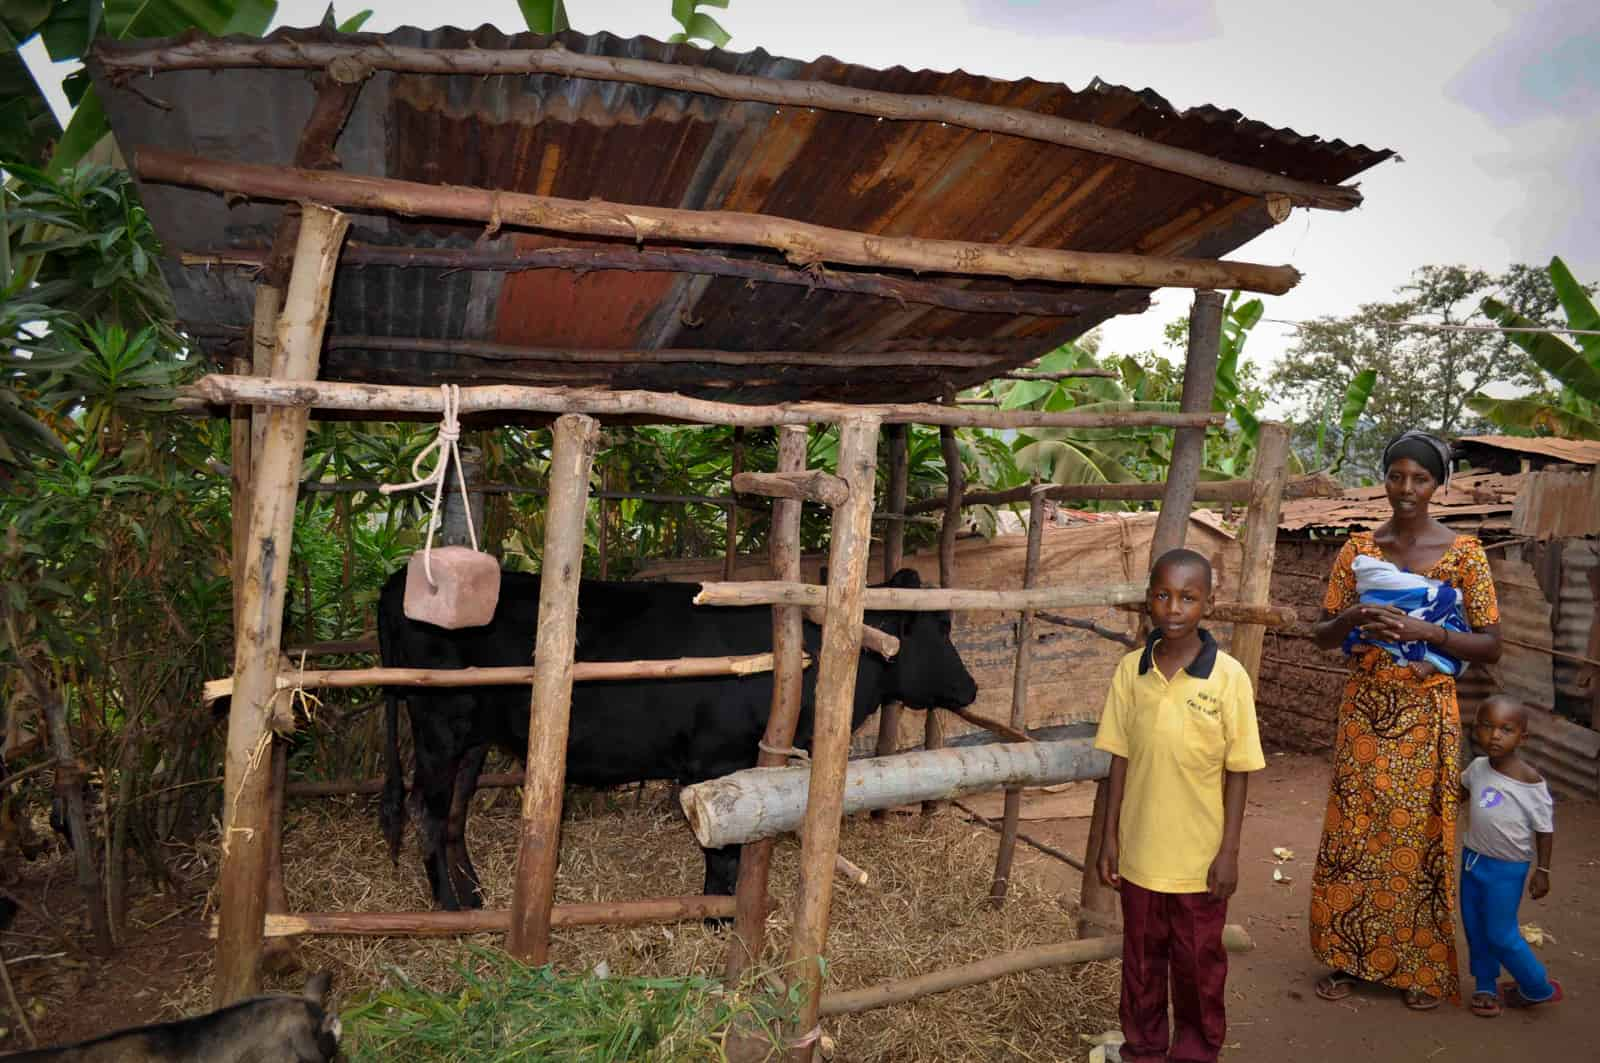 This Is What Happens When You Give Livestock to Families in Poverty